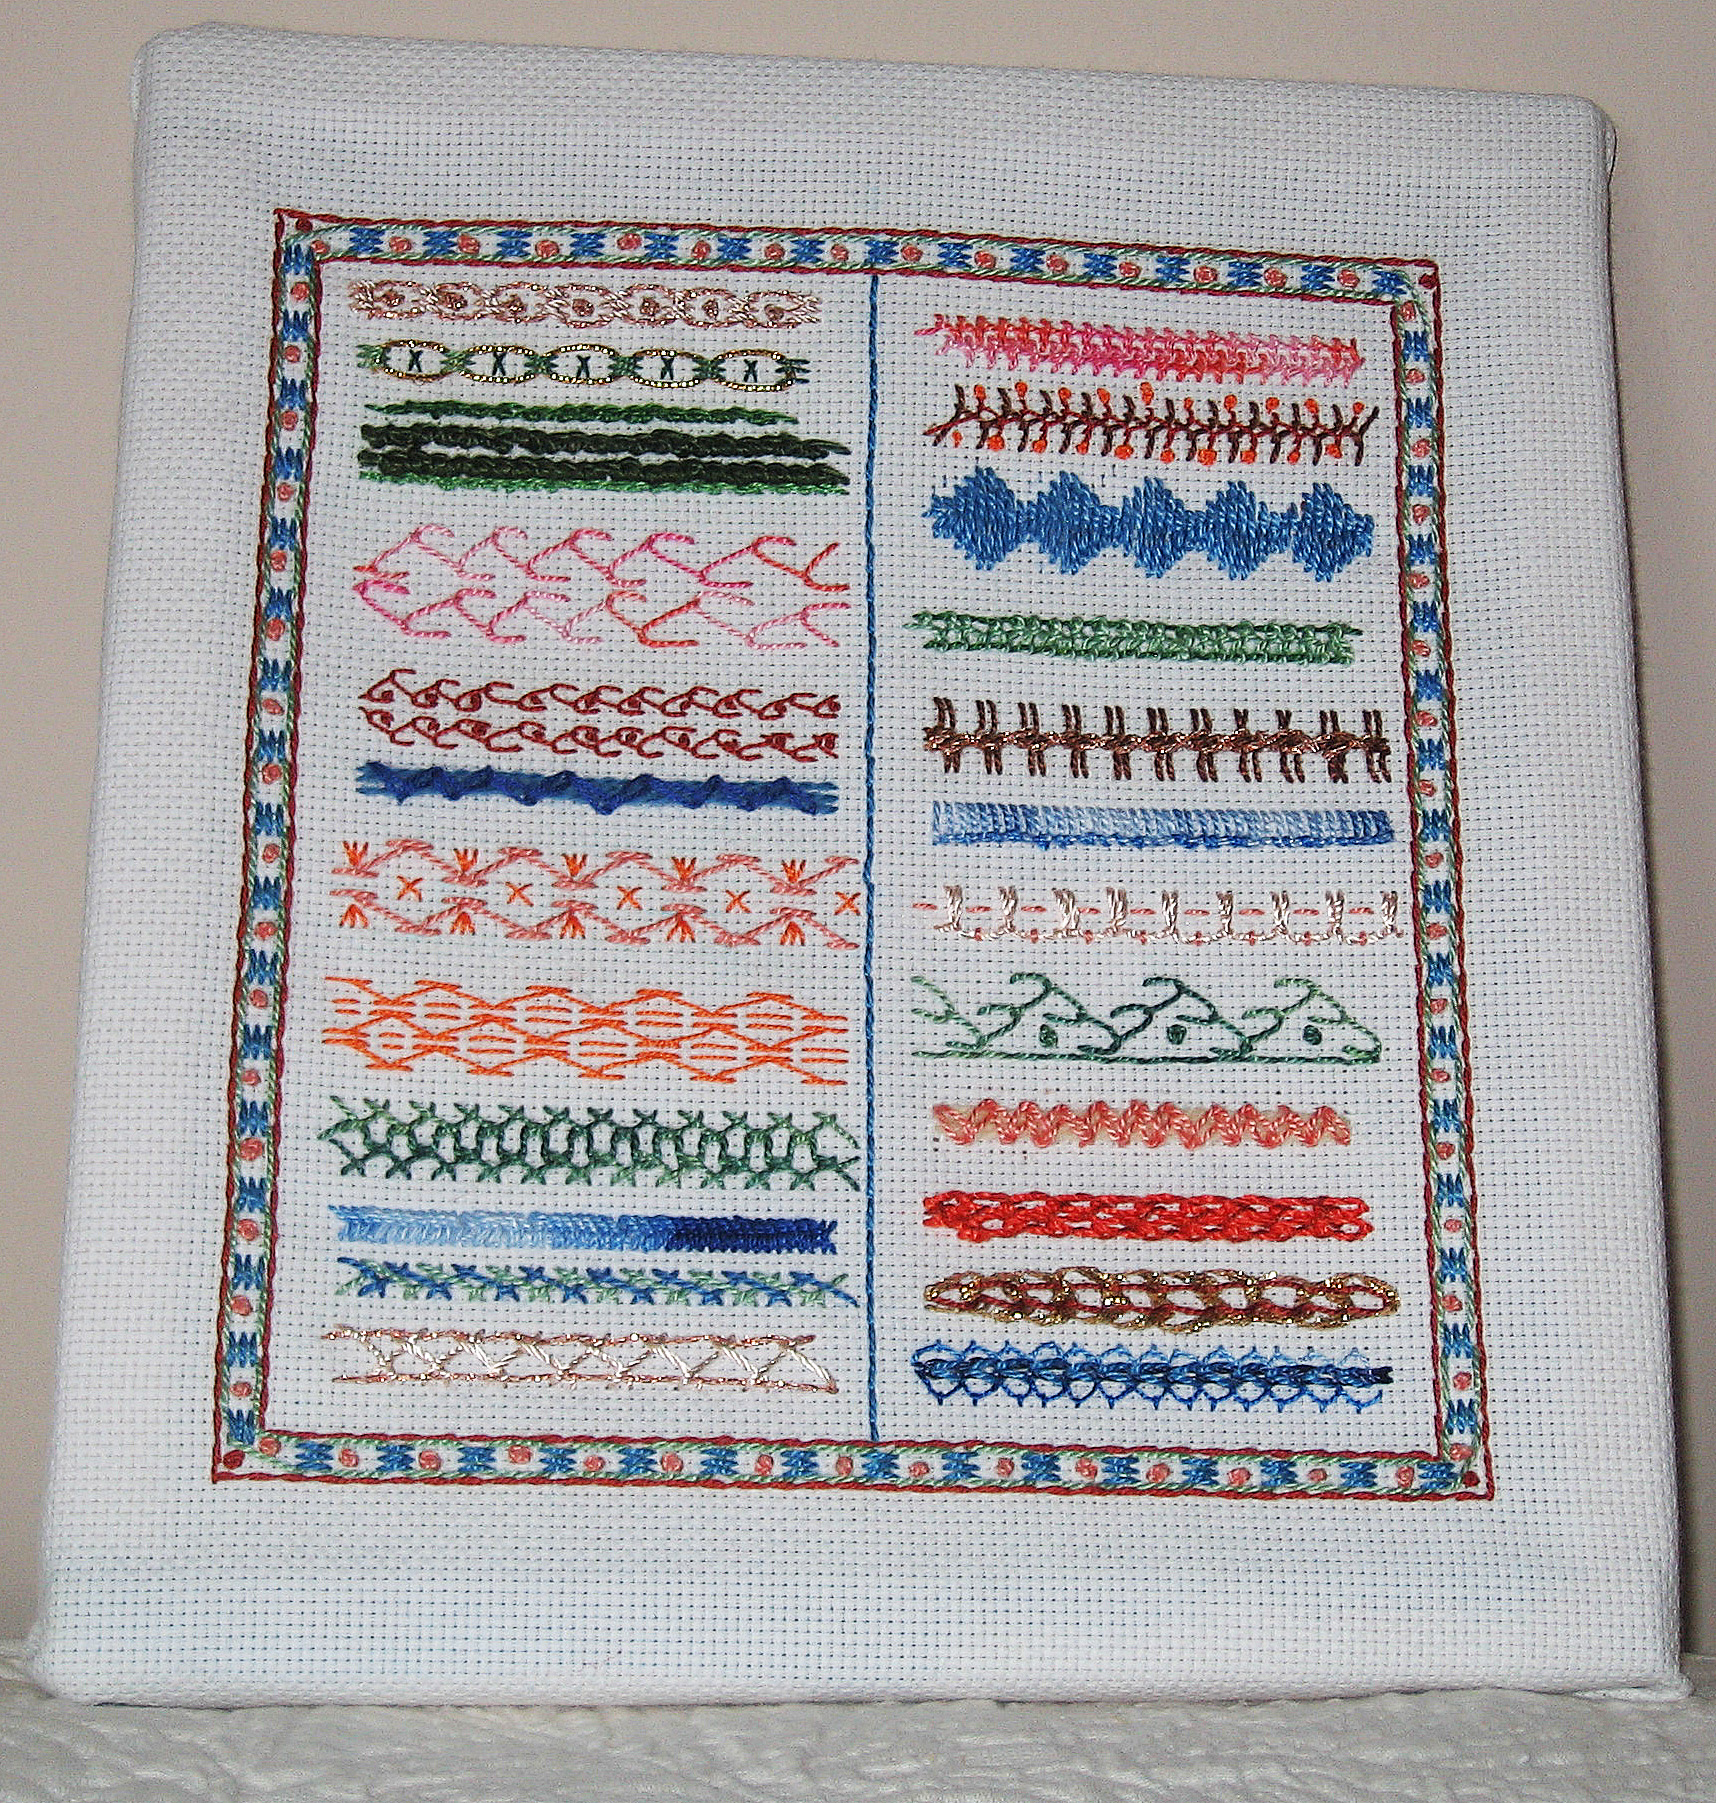 Vintage Sampler Gay Ann Rogers White Work Drawn Thread Hem Stitch Cross Stitch